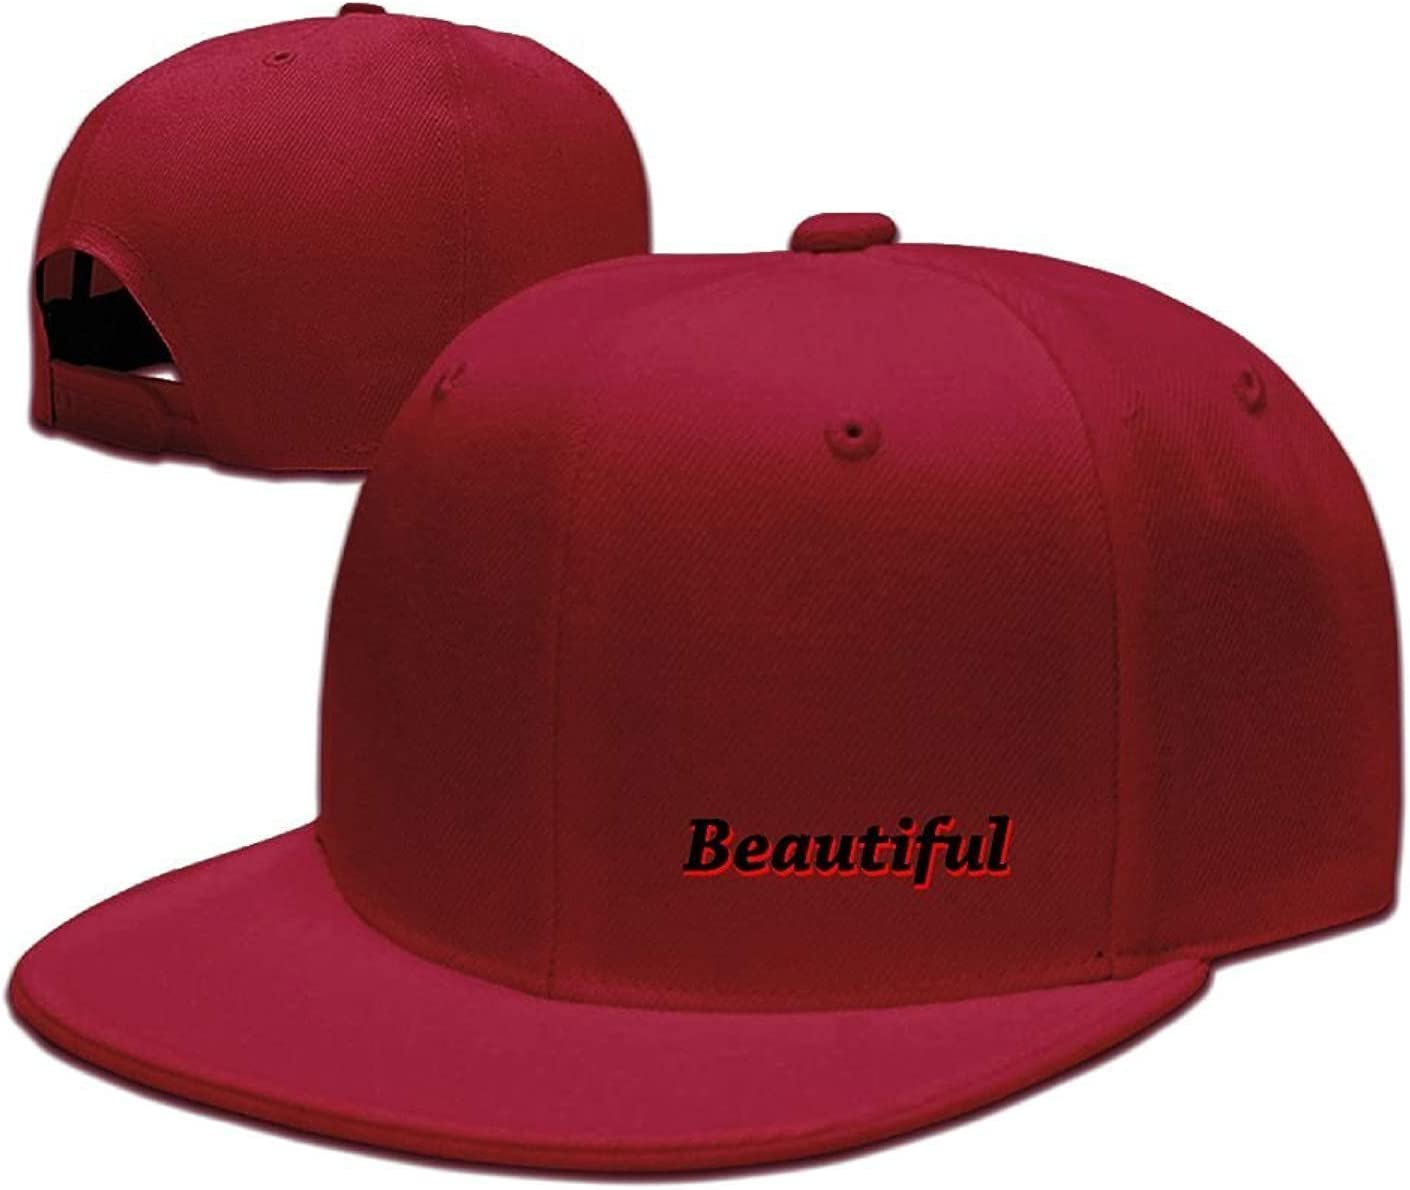 Miedhki 001.PNG Fashion Baseball Gorra,Hiphop Gorra Multicolor82 ...